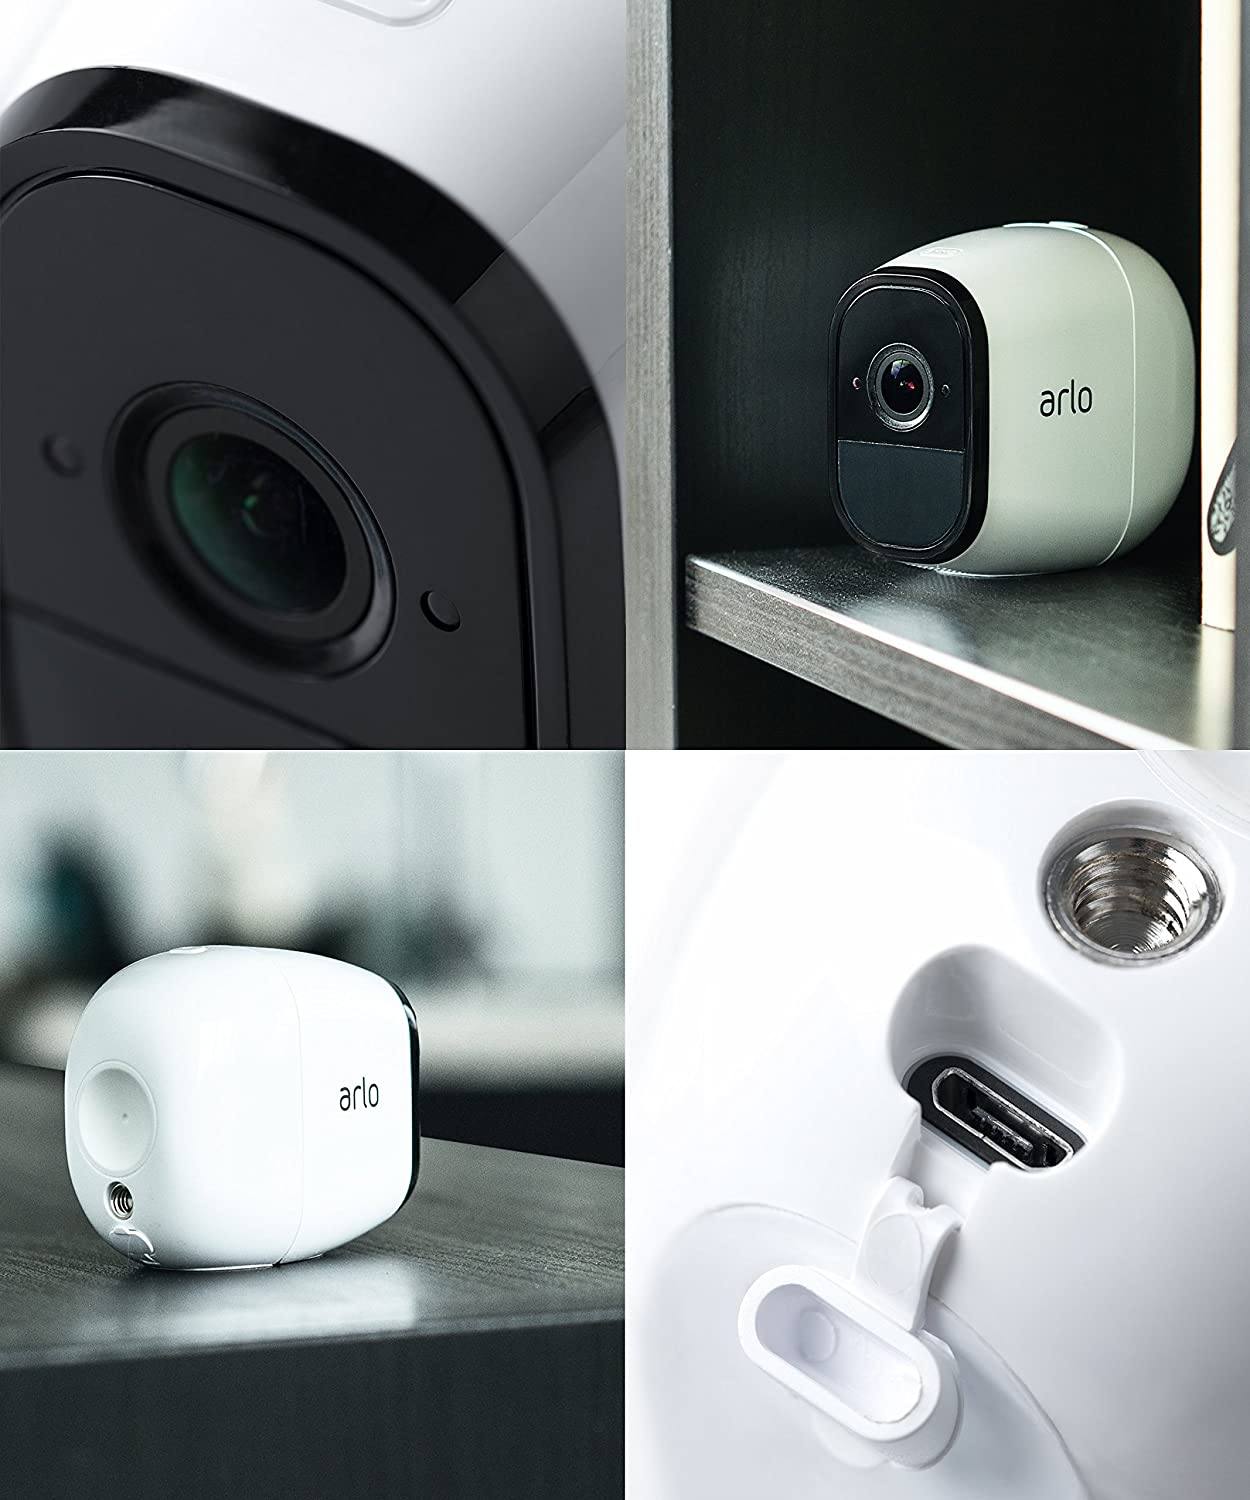 Arlo Pro Wire-Free HD Home Security 2 Camera System VMS4230-100AUS Smart Features